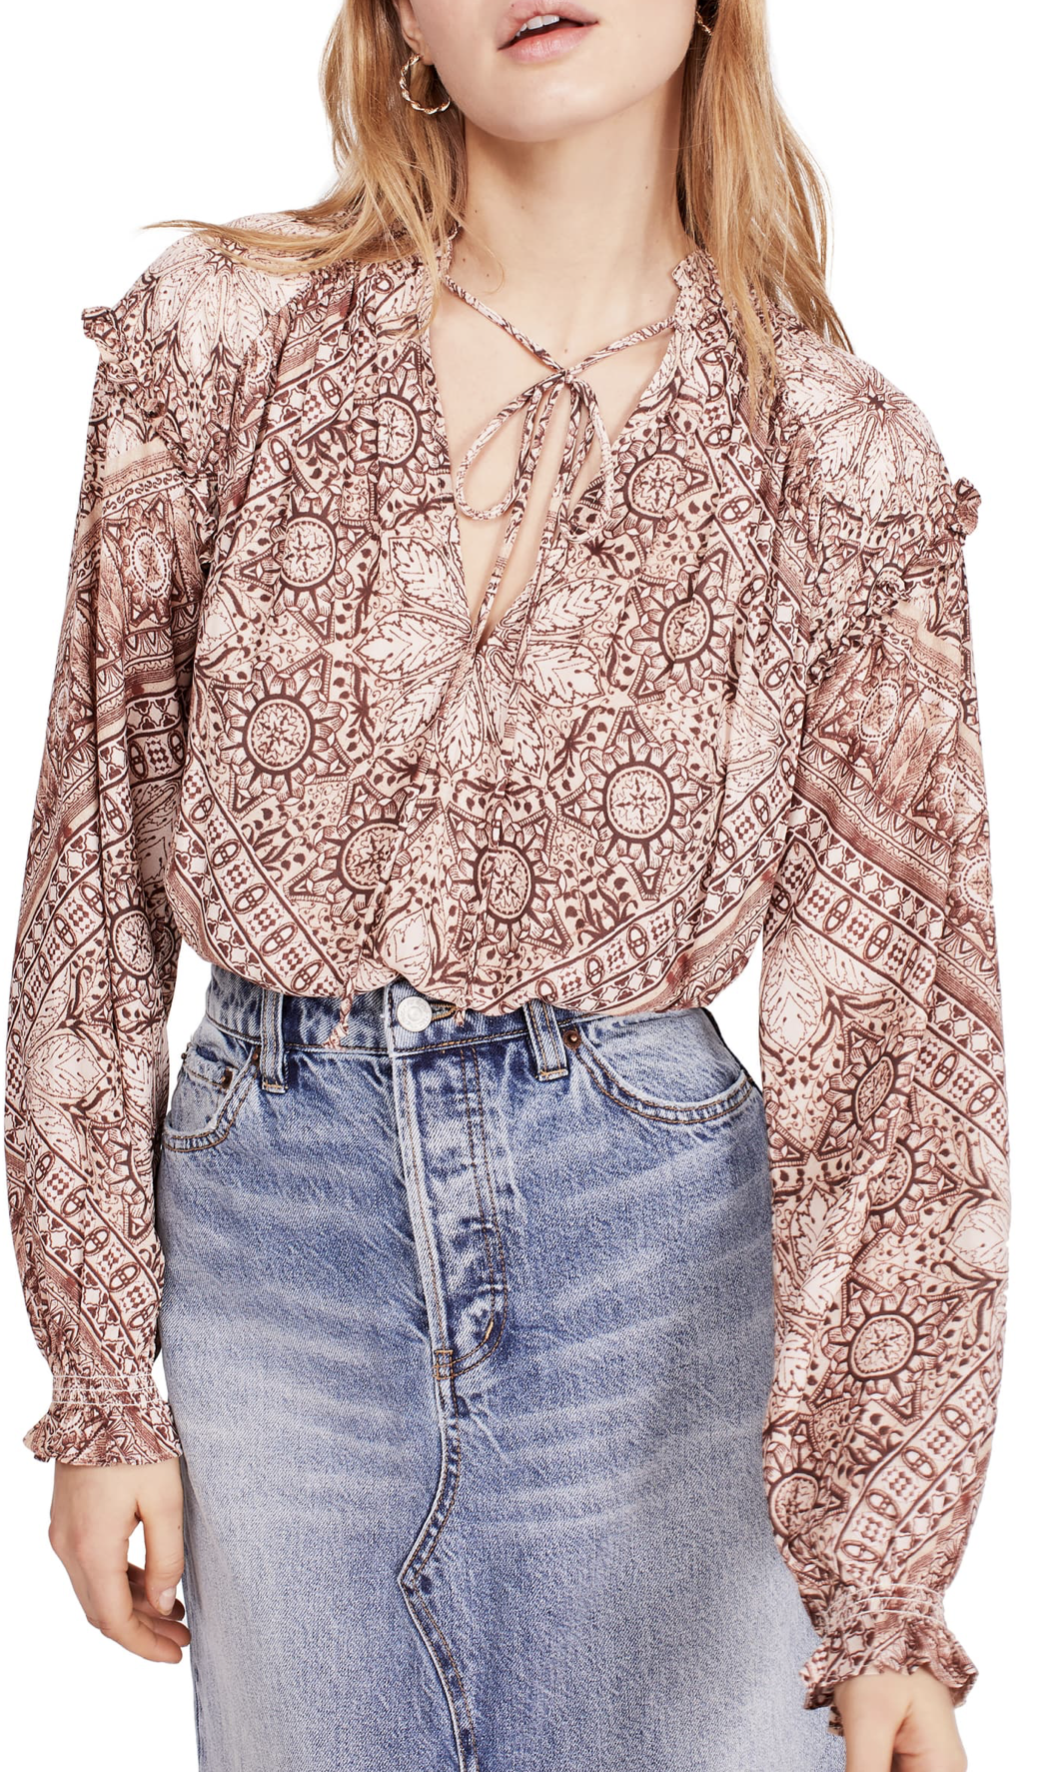 Free People Little Runaway Blouse - $64.90